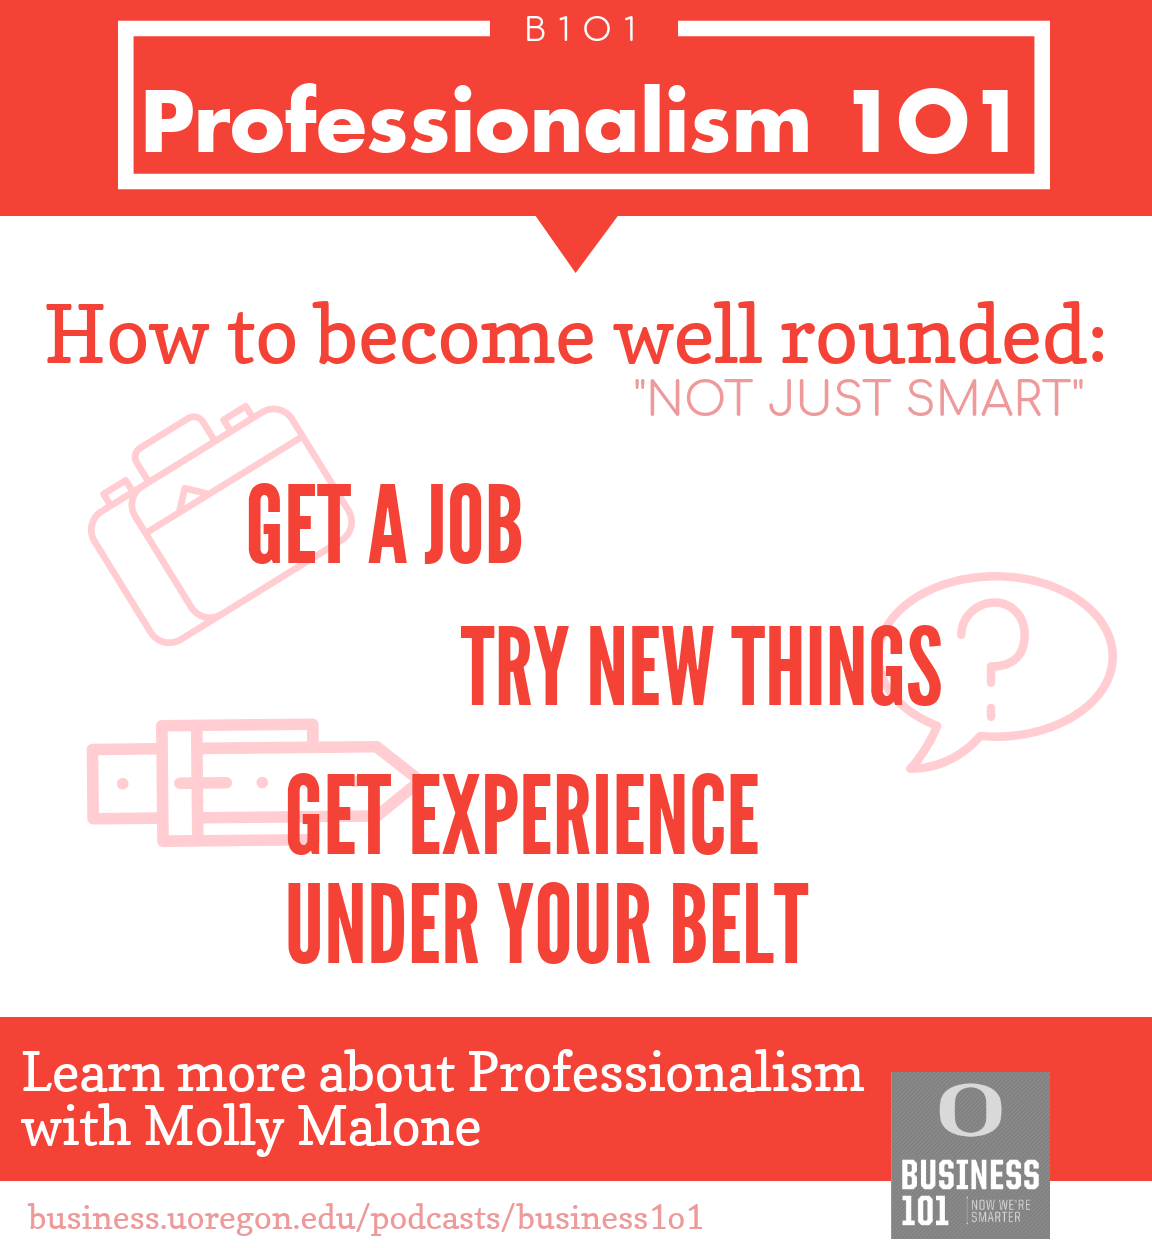 Illustration of steps to being well rounded that were discussed in the podcast: Get a job, try new things, get experience under your belt